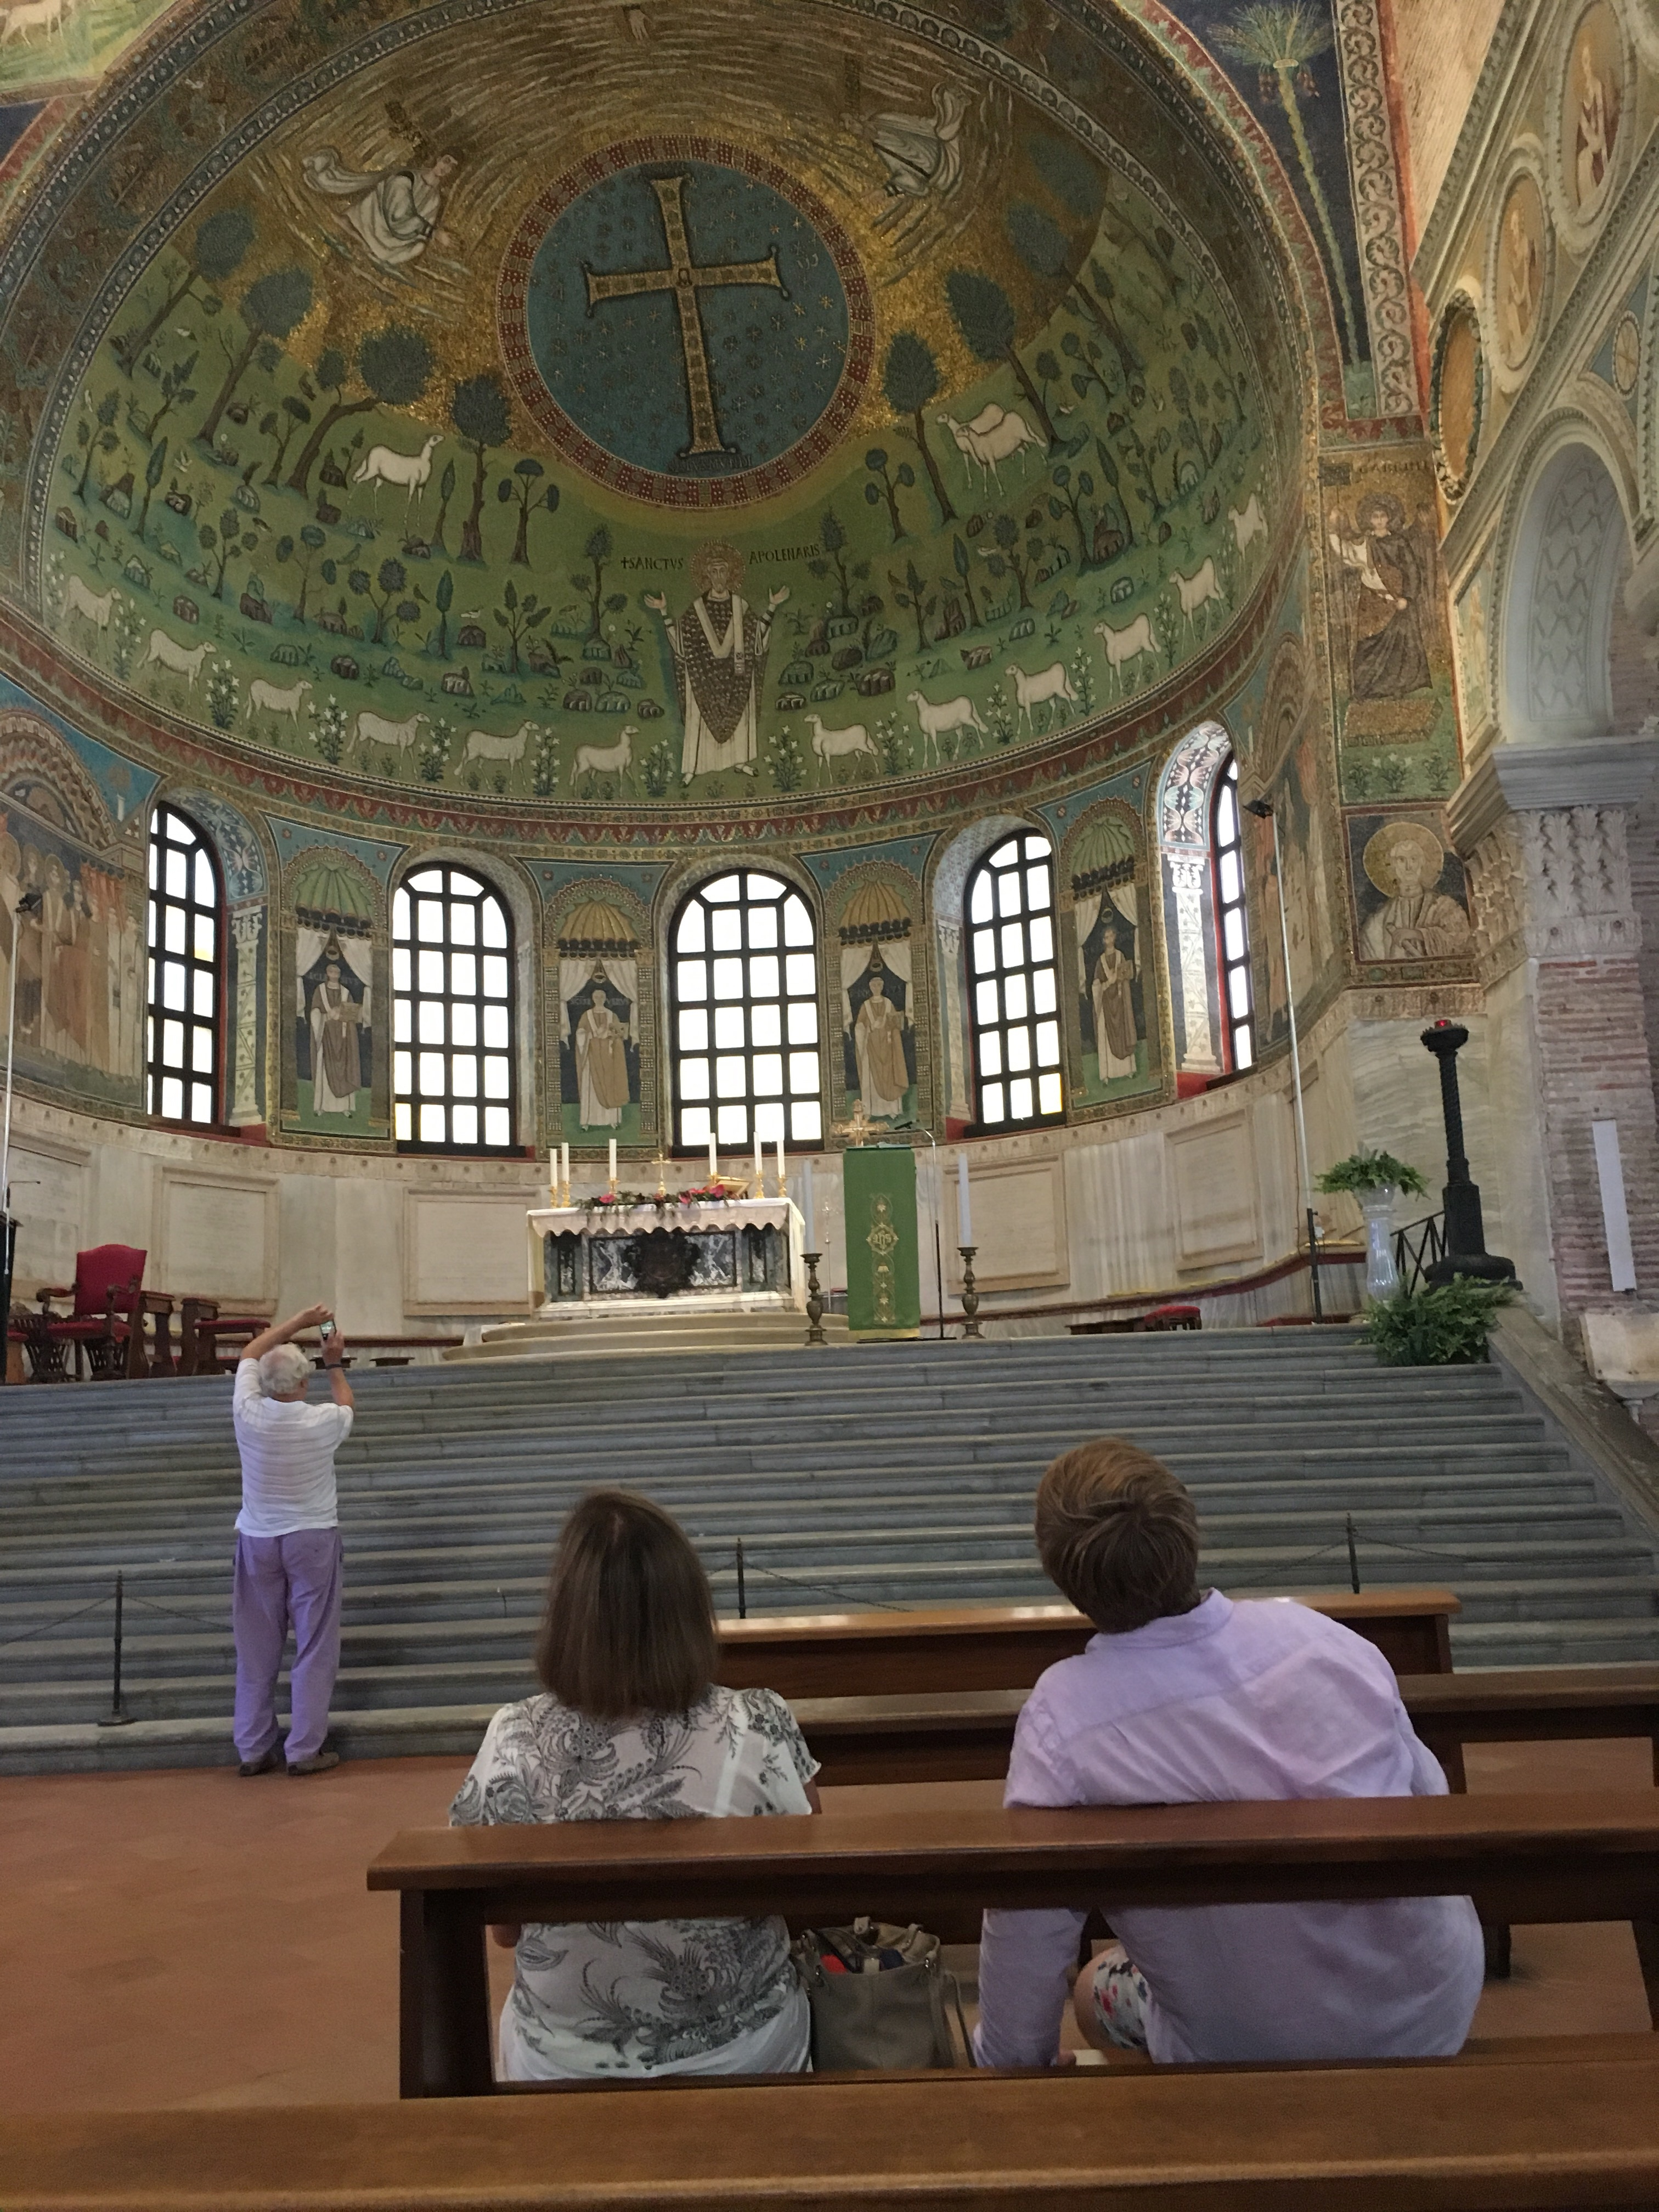 Visitors gaze in awe at the mosaics that decorate the apse, Sant' Apollinare in Classe